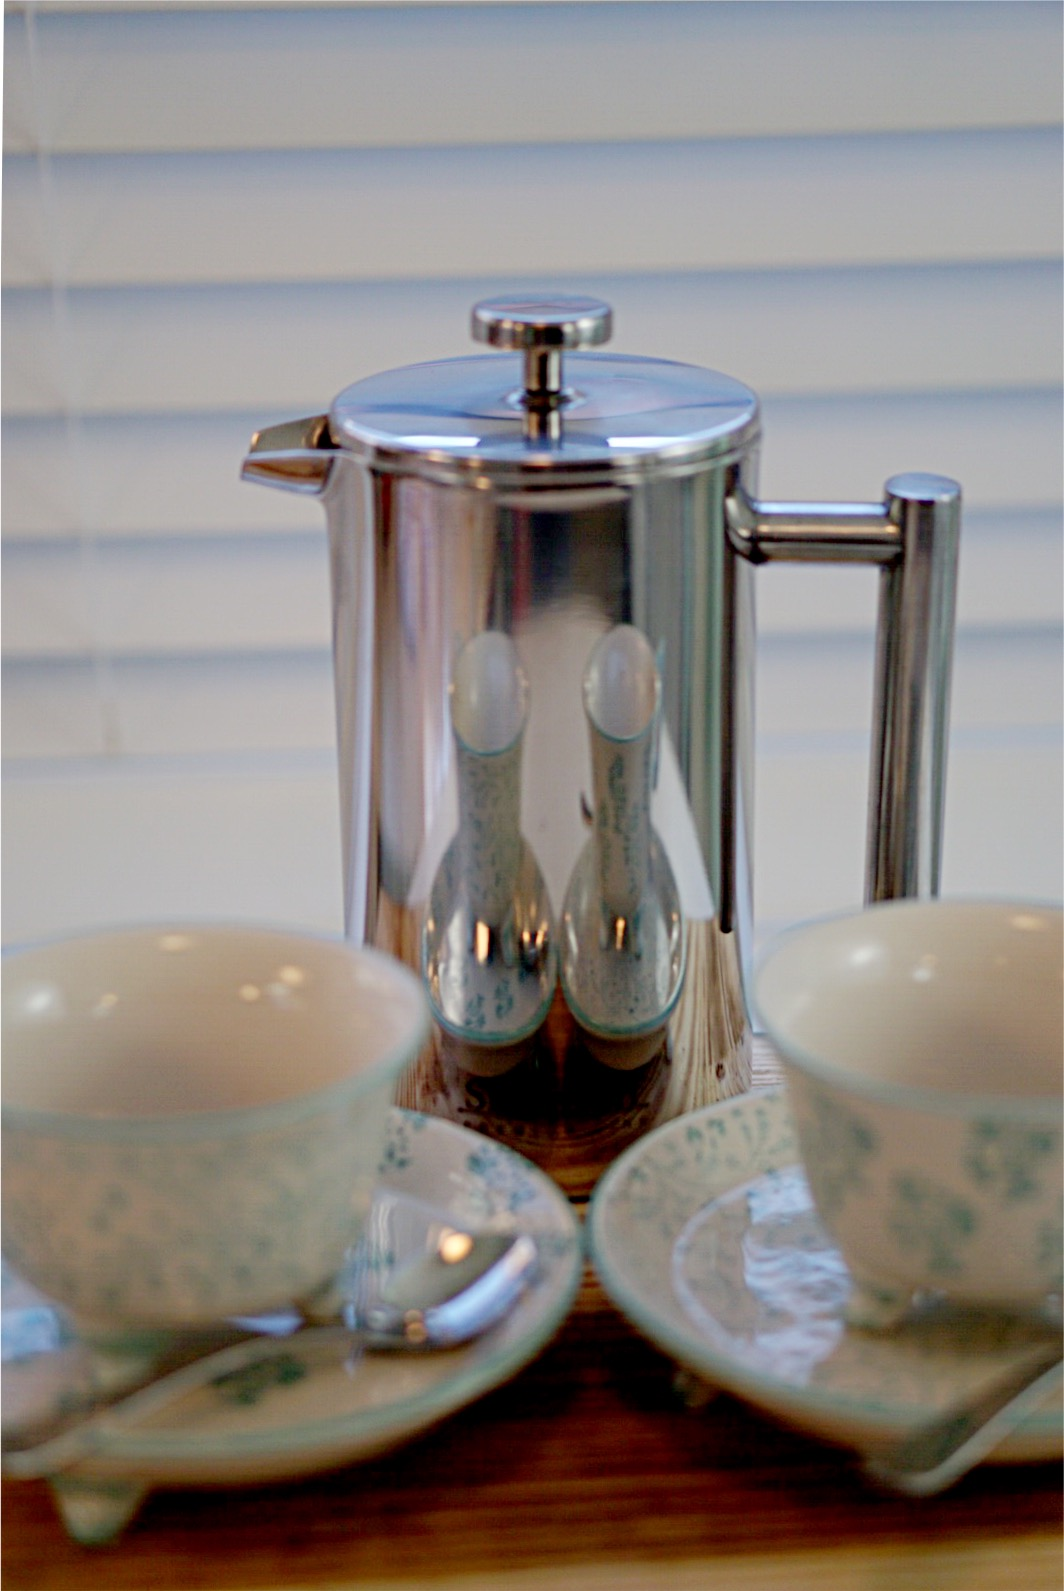 Using a French Press is much easier than it looks. It only takes a bit of knowledge and a bit of practice to have a spectacular cup of coffee!~By Wet Whistle Drinks by Darla Bentley